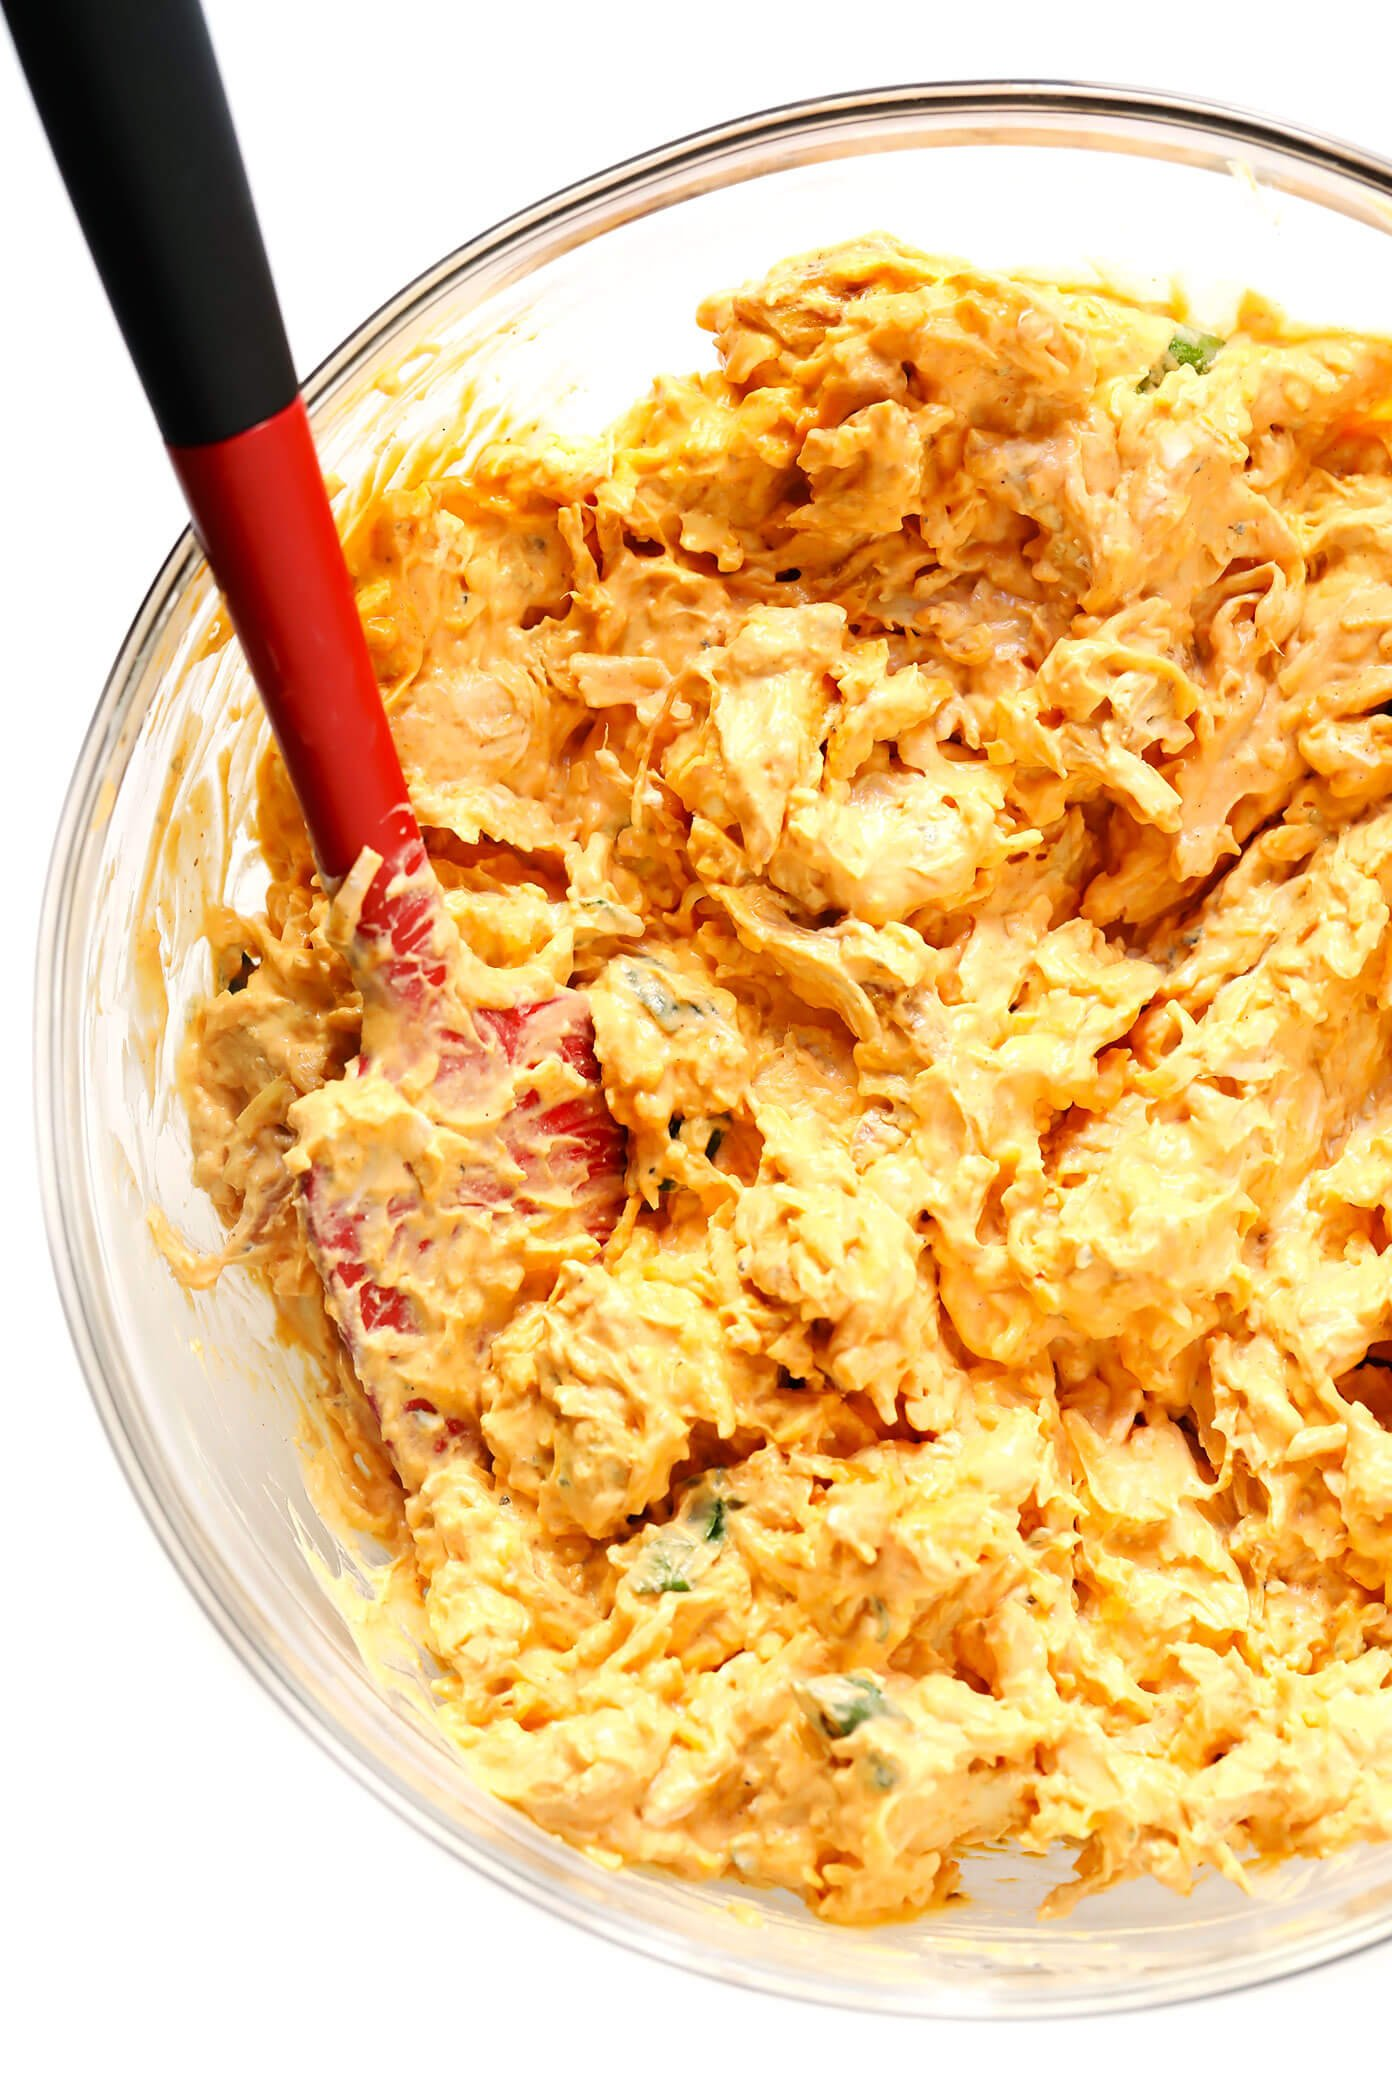 How To Make Buffalo Chicken Dip